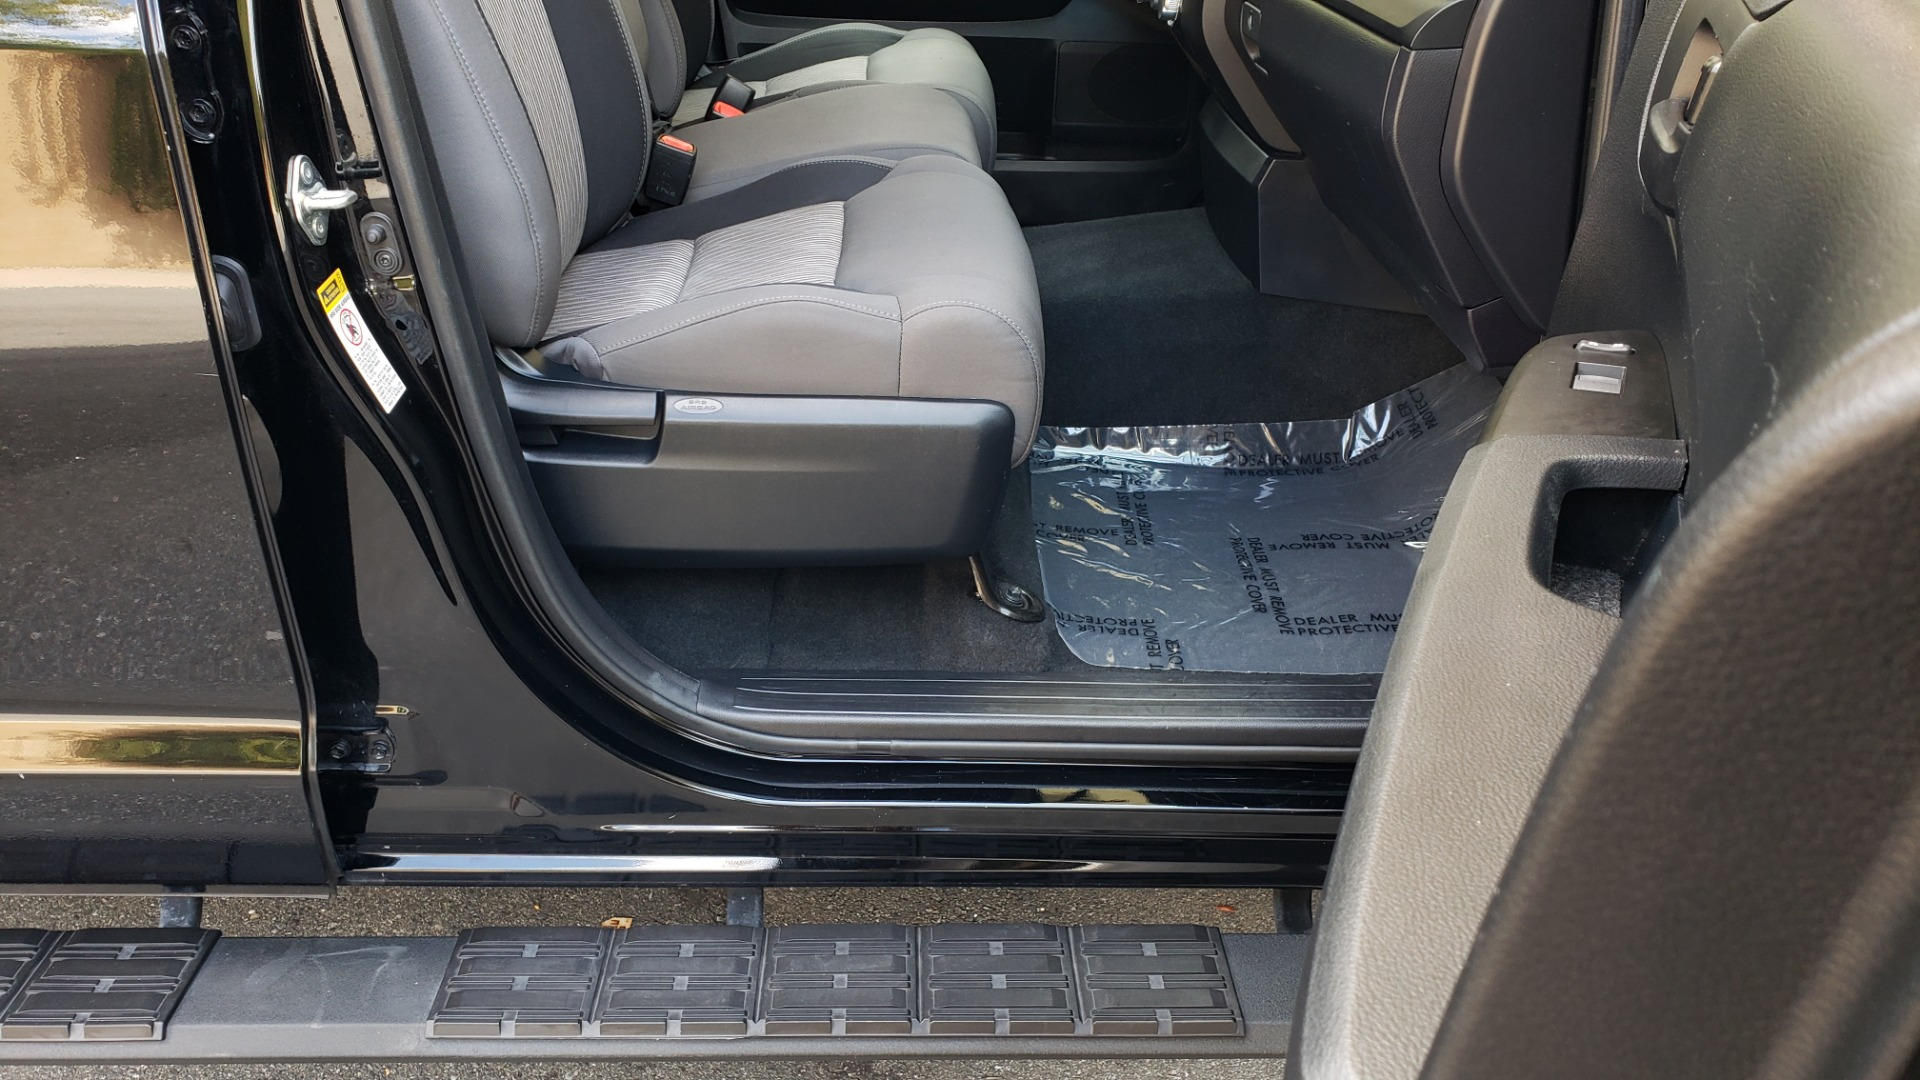 Used 2017 Toyota TUNDRA 4WD SR DOUBLECAB / 4WD / 6.5' BED / V8 / AUTO / REARVIEW for sale Sold at Formula Imports in Charlotte NC 28227 59